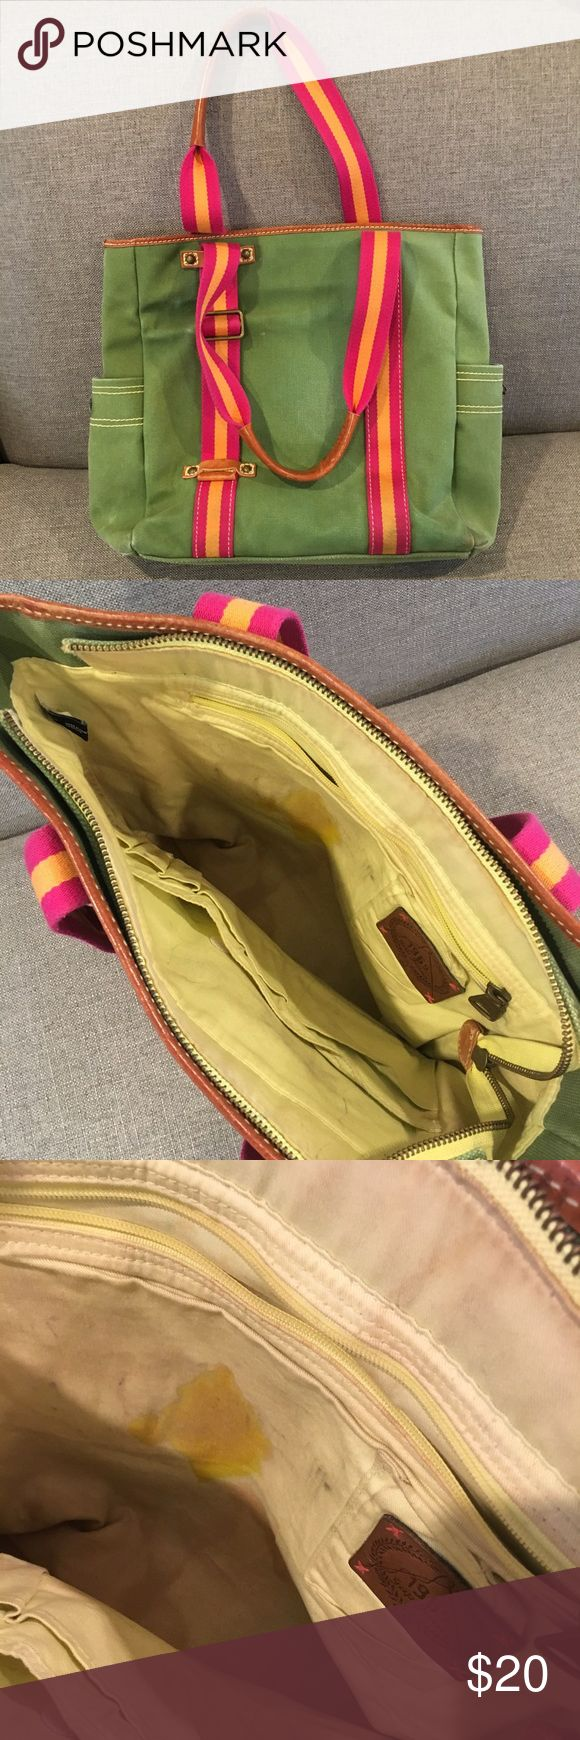 {Gap} Tote Bag Bright and colorful tote bag. Green with accents of pink and orange. Canvas material with light brown leather on the straps. Size pockets have snaps but missing the buttons on either side. There is so much storage inside but there are some stains. Inner pockets have velcrow and zippers. Great versatile bag! GAP Bags Totes